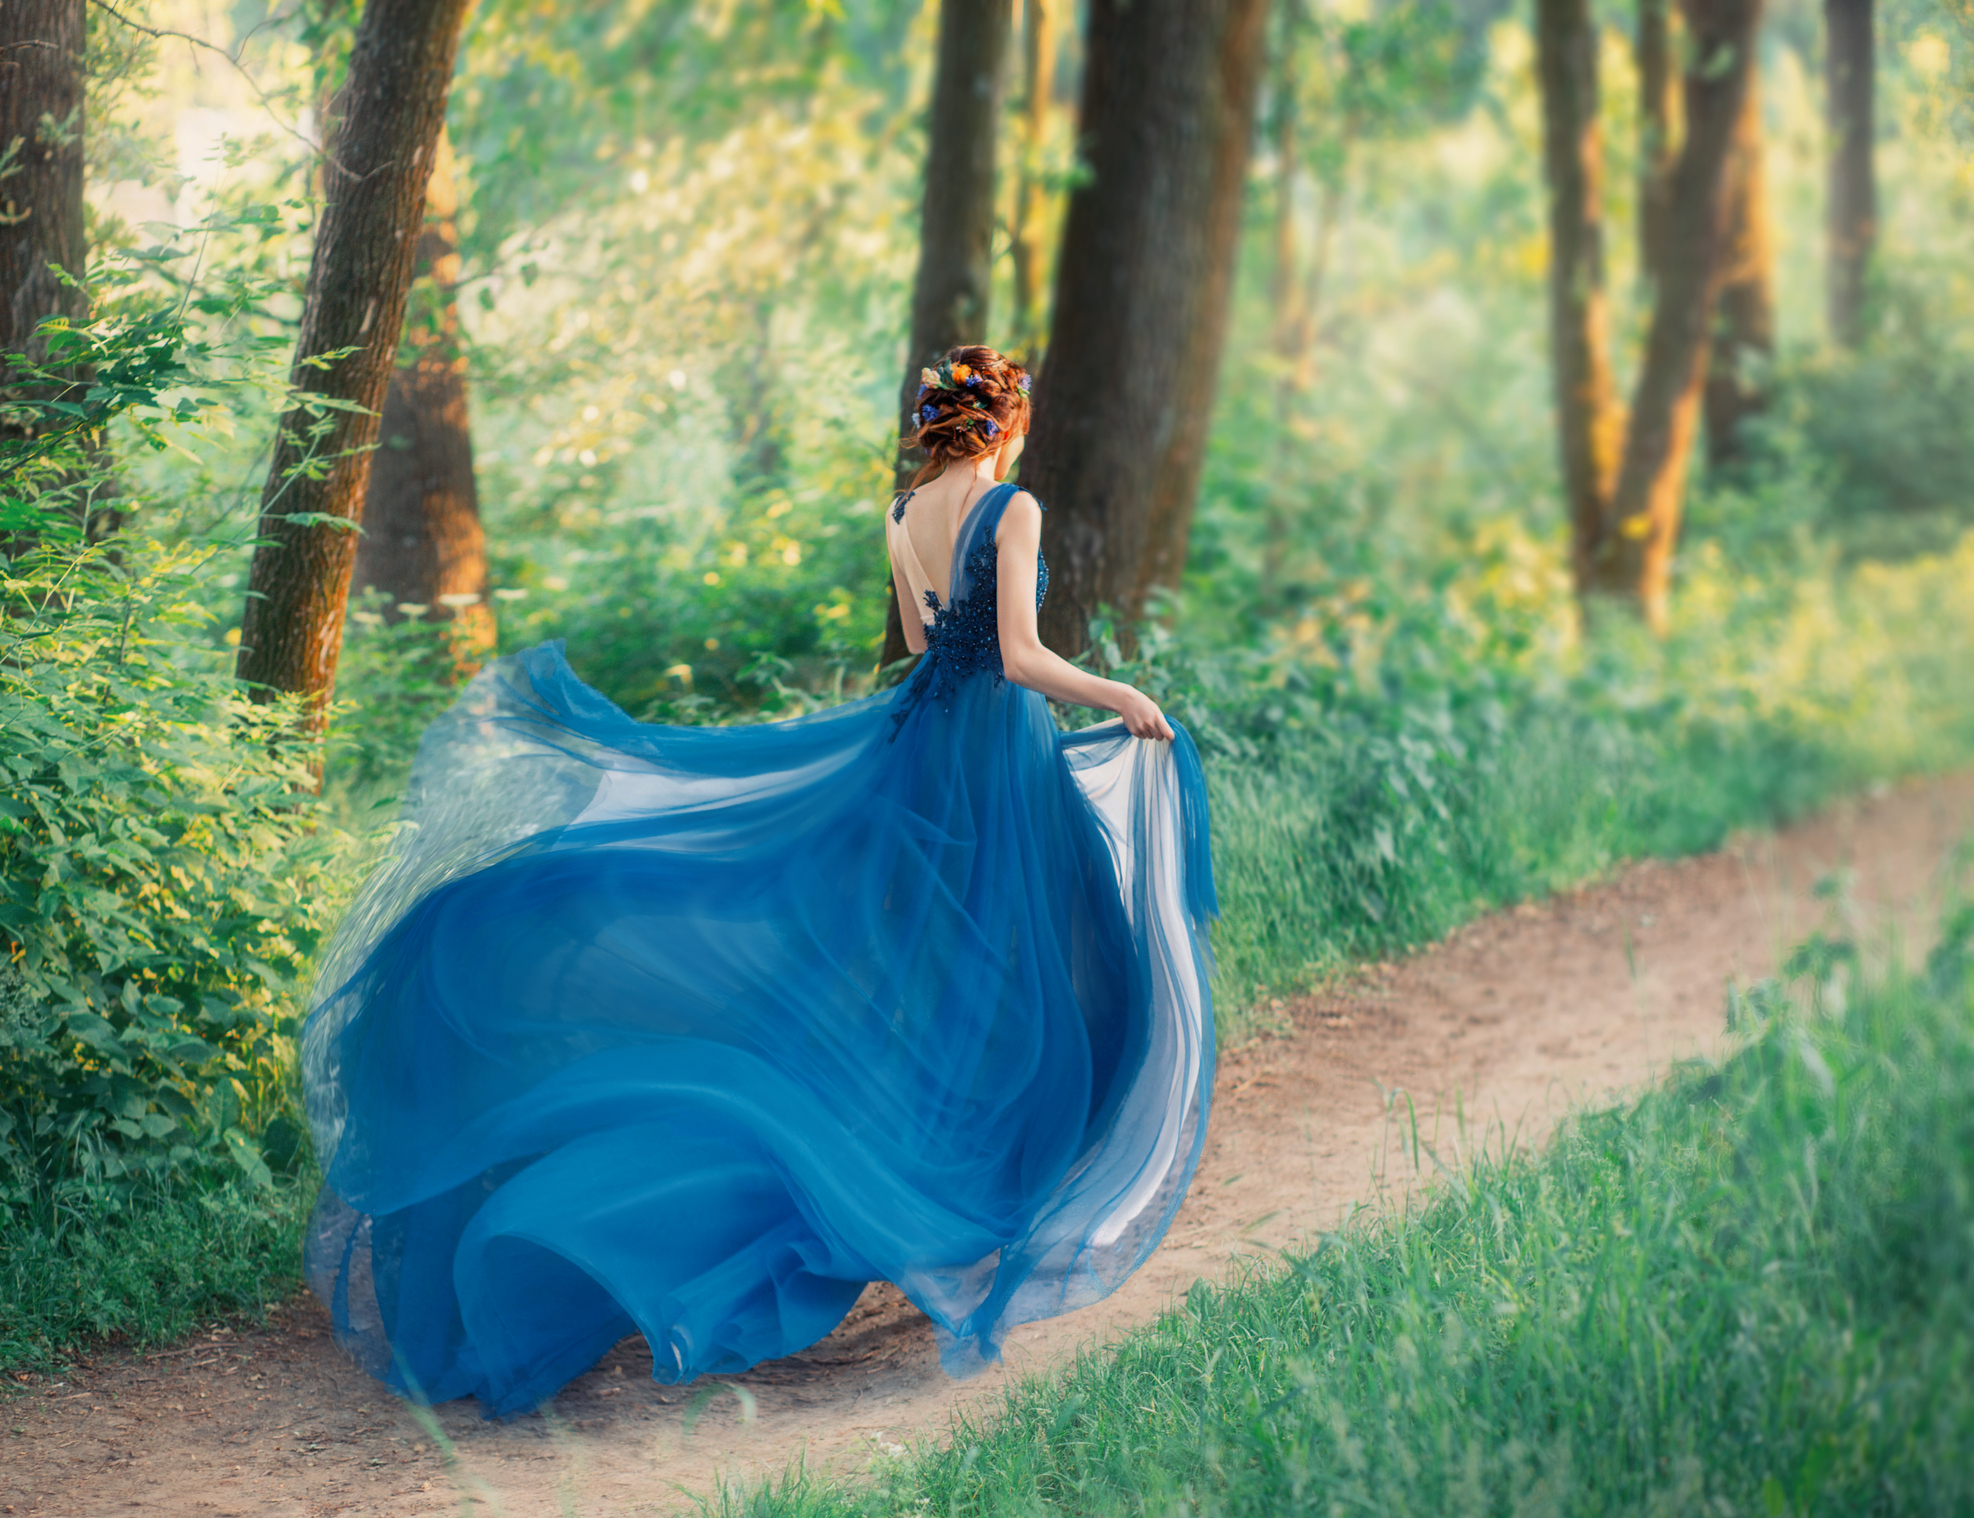 Lady in long elegant blue dress with flying light train